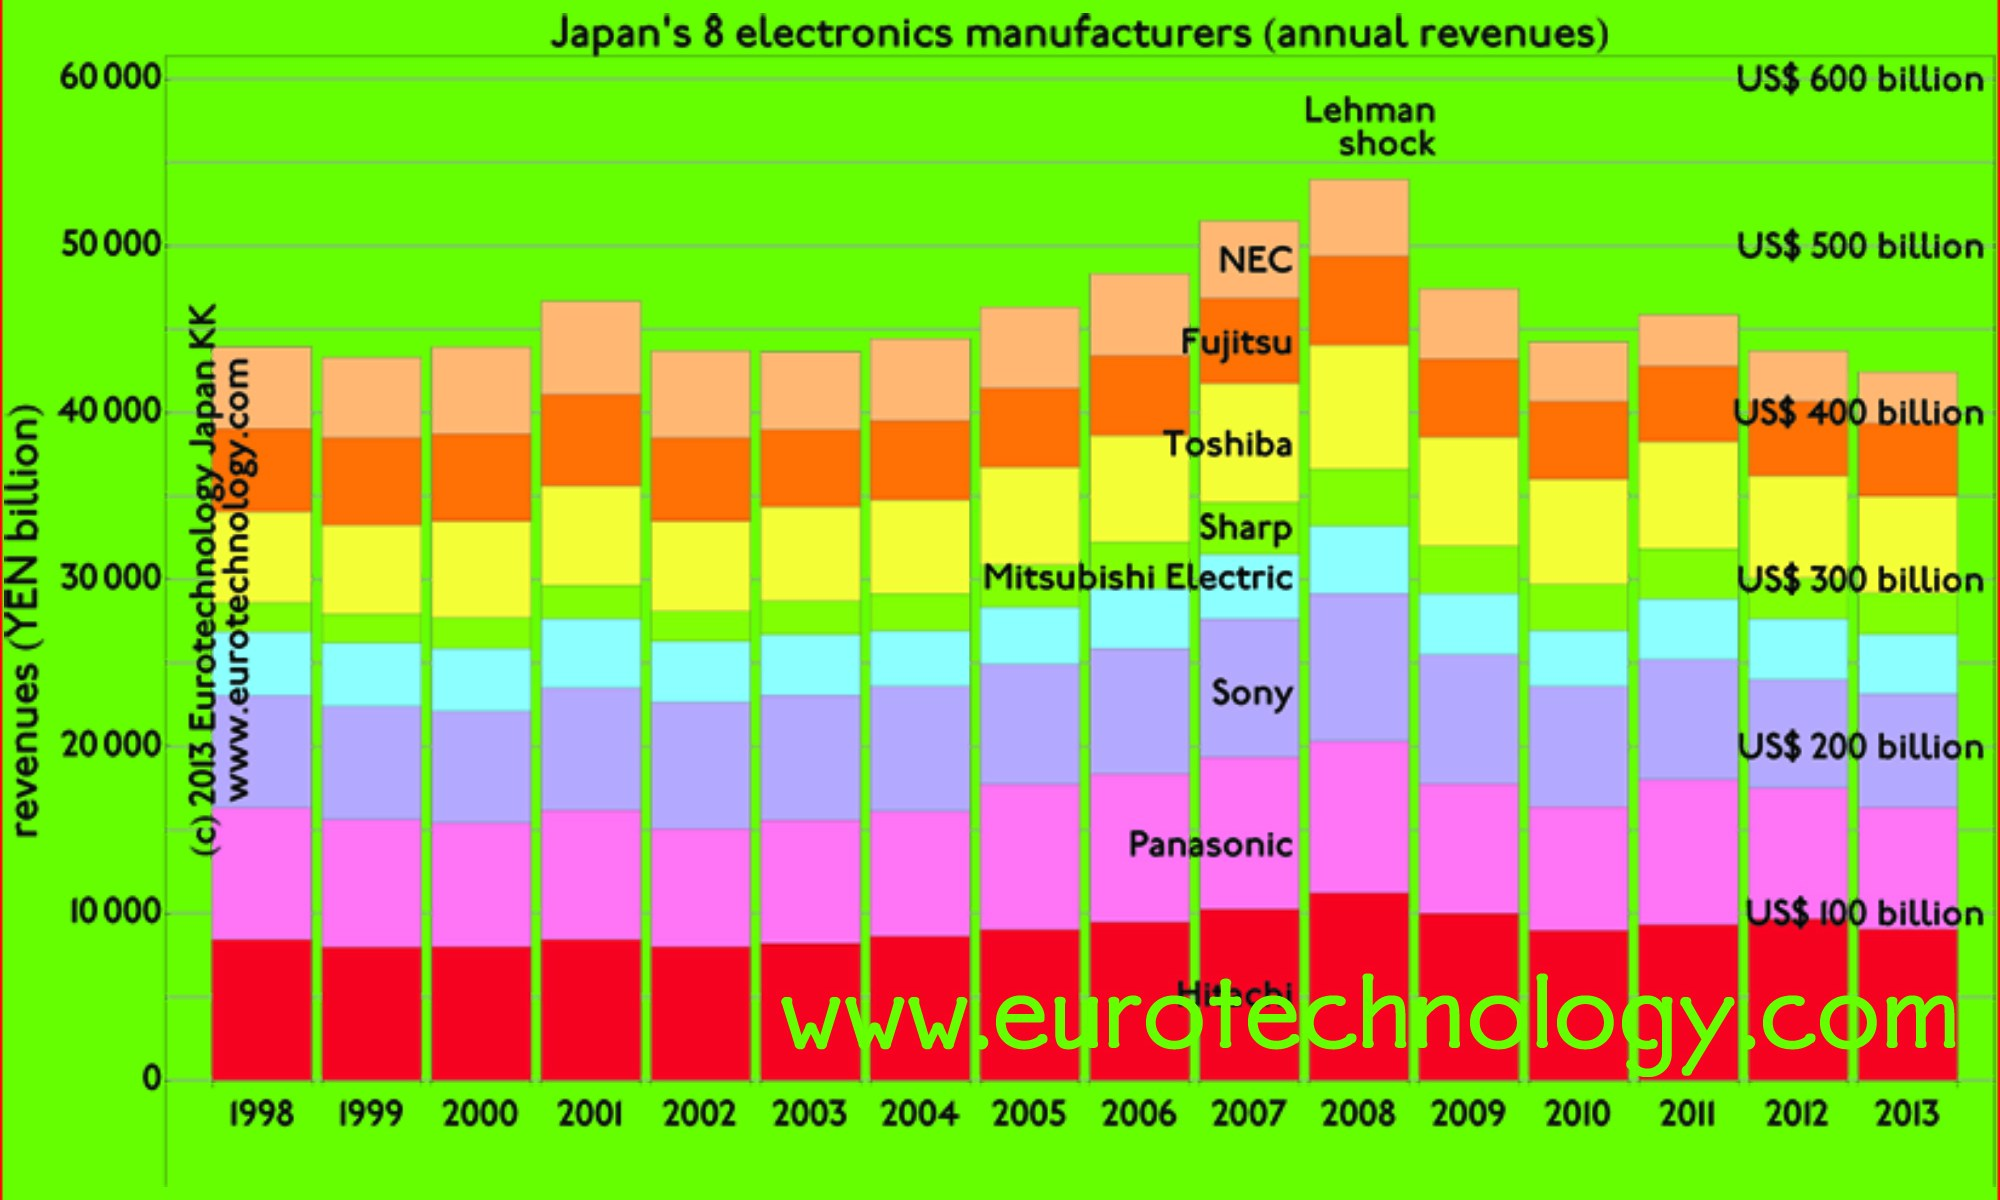 Japan's electronics industries